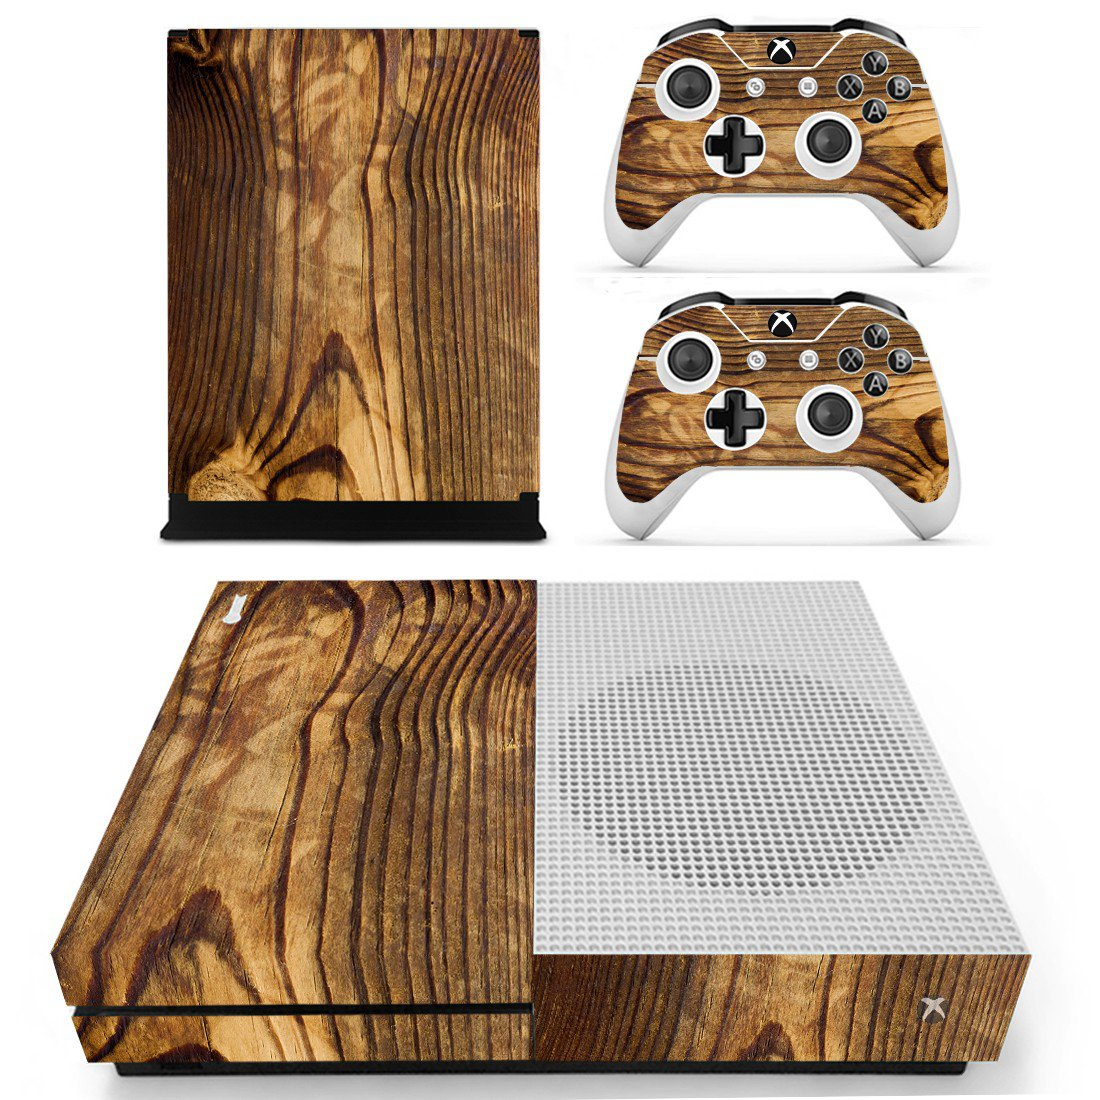 Tree trunk skin decal for Xbox one S console and controllers